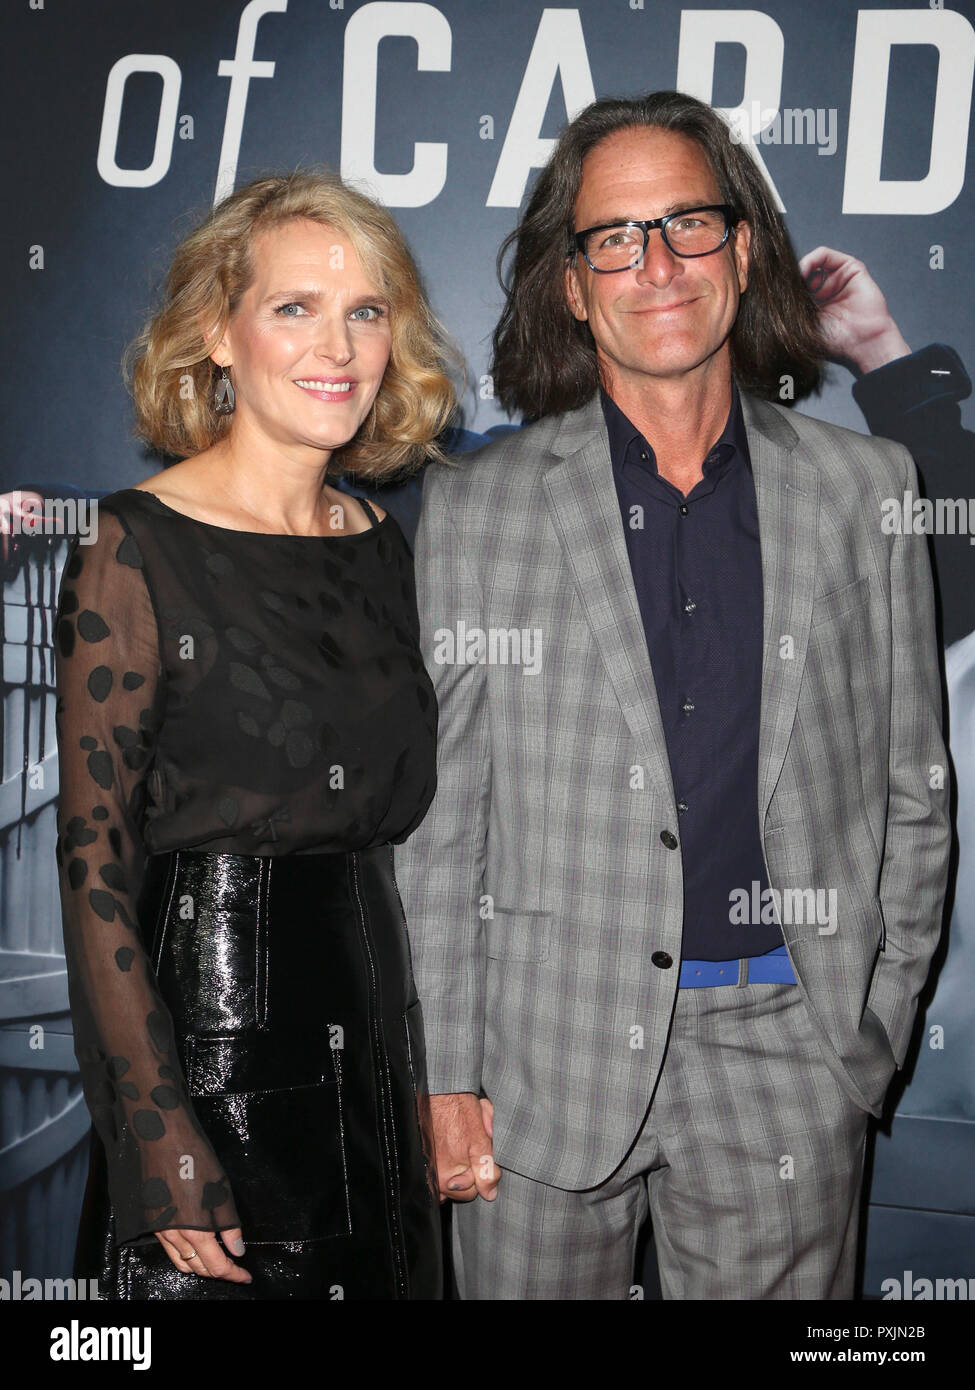 Los Angeles, Ca, USA. 22nd Oct, 2018. Melissa James Gibson, Guest, at the Season 6 premiere screening of Netflix' House Of Cards at The DGA Theater in Los Angeles, California on October 22, 2018. Credit: Faye Sadou/Media Punch/Alamy Live News - Stock Image